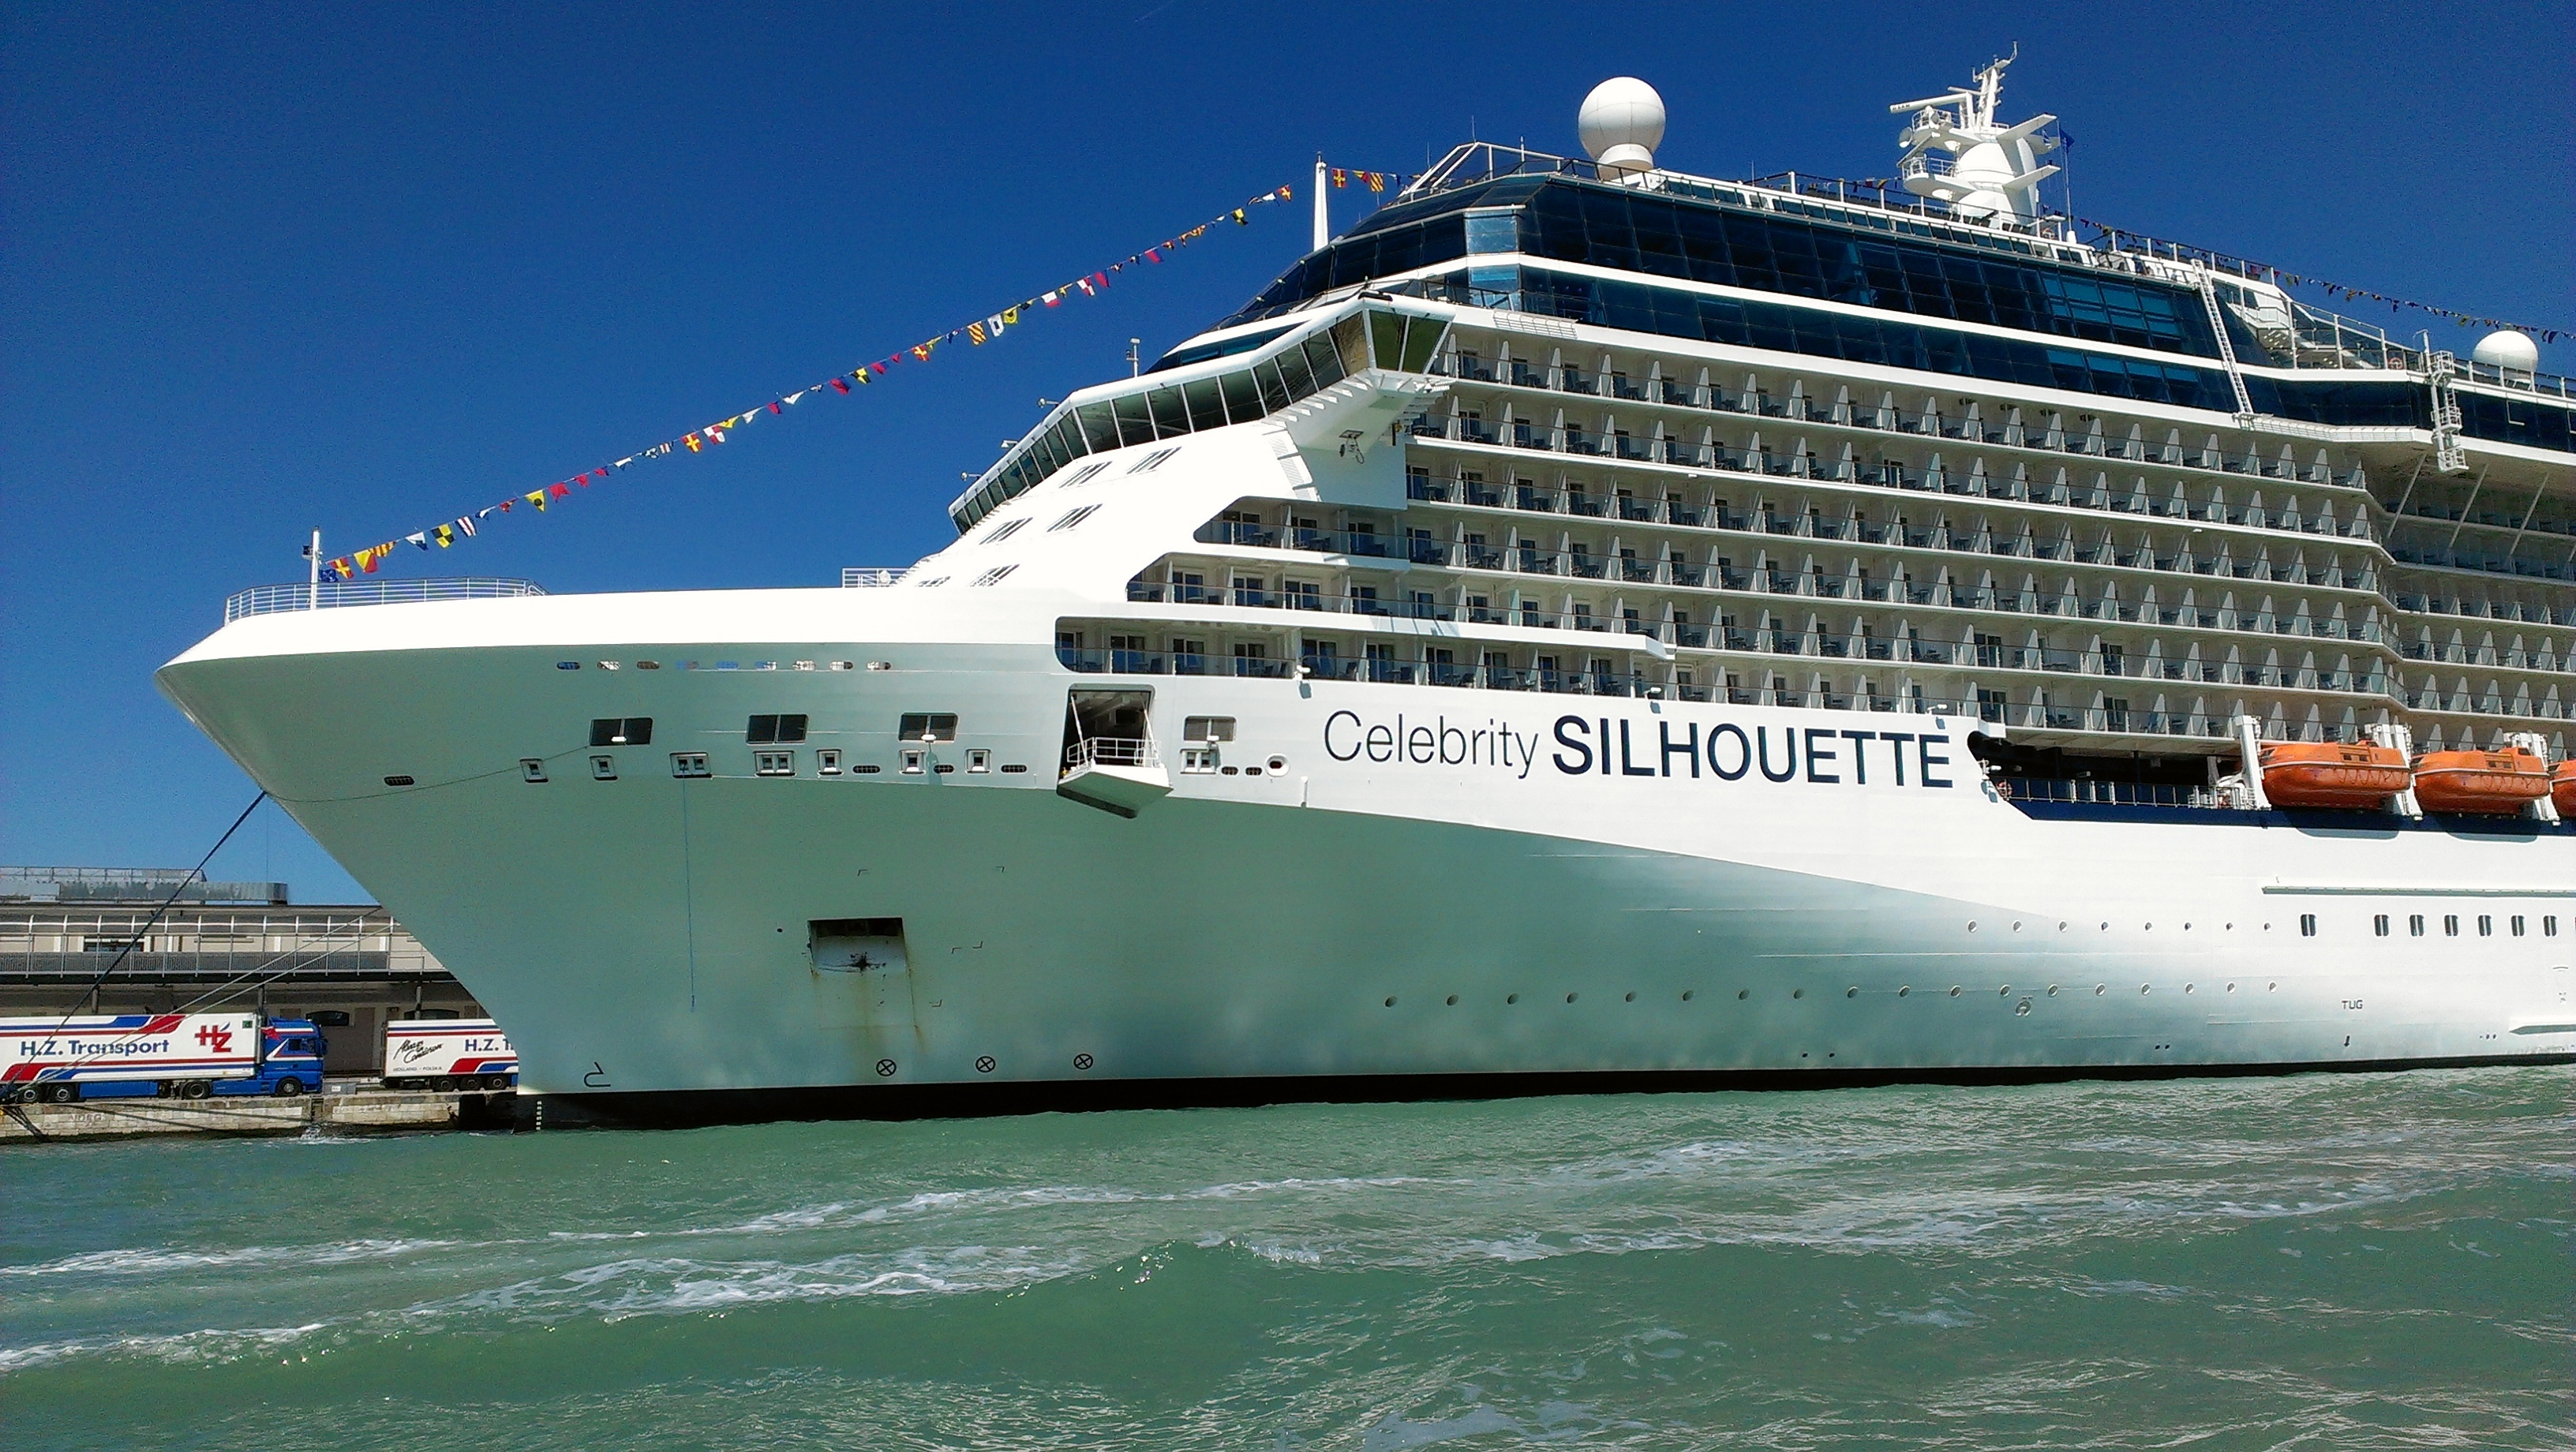 Celebrity Silhouette Ship Tour - YouTube